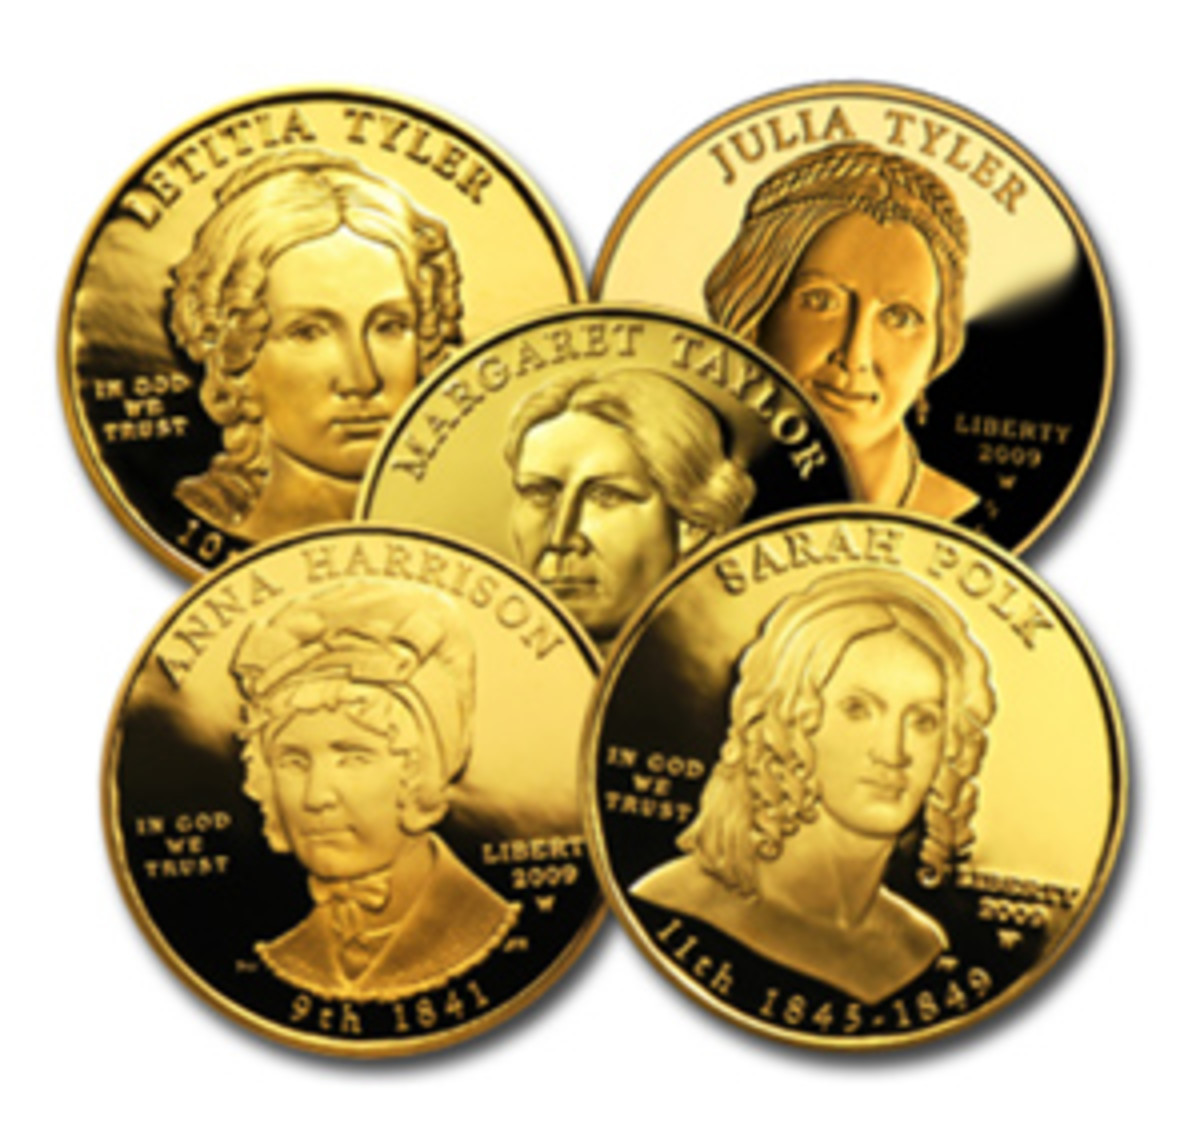 Modest appreciation in gold has been a catalyst for the First Spouse coins.